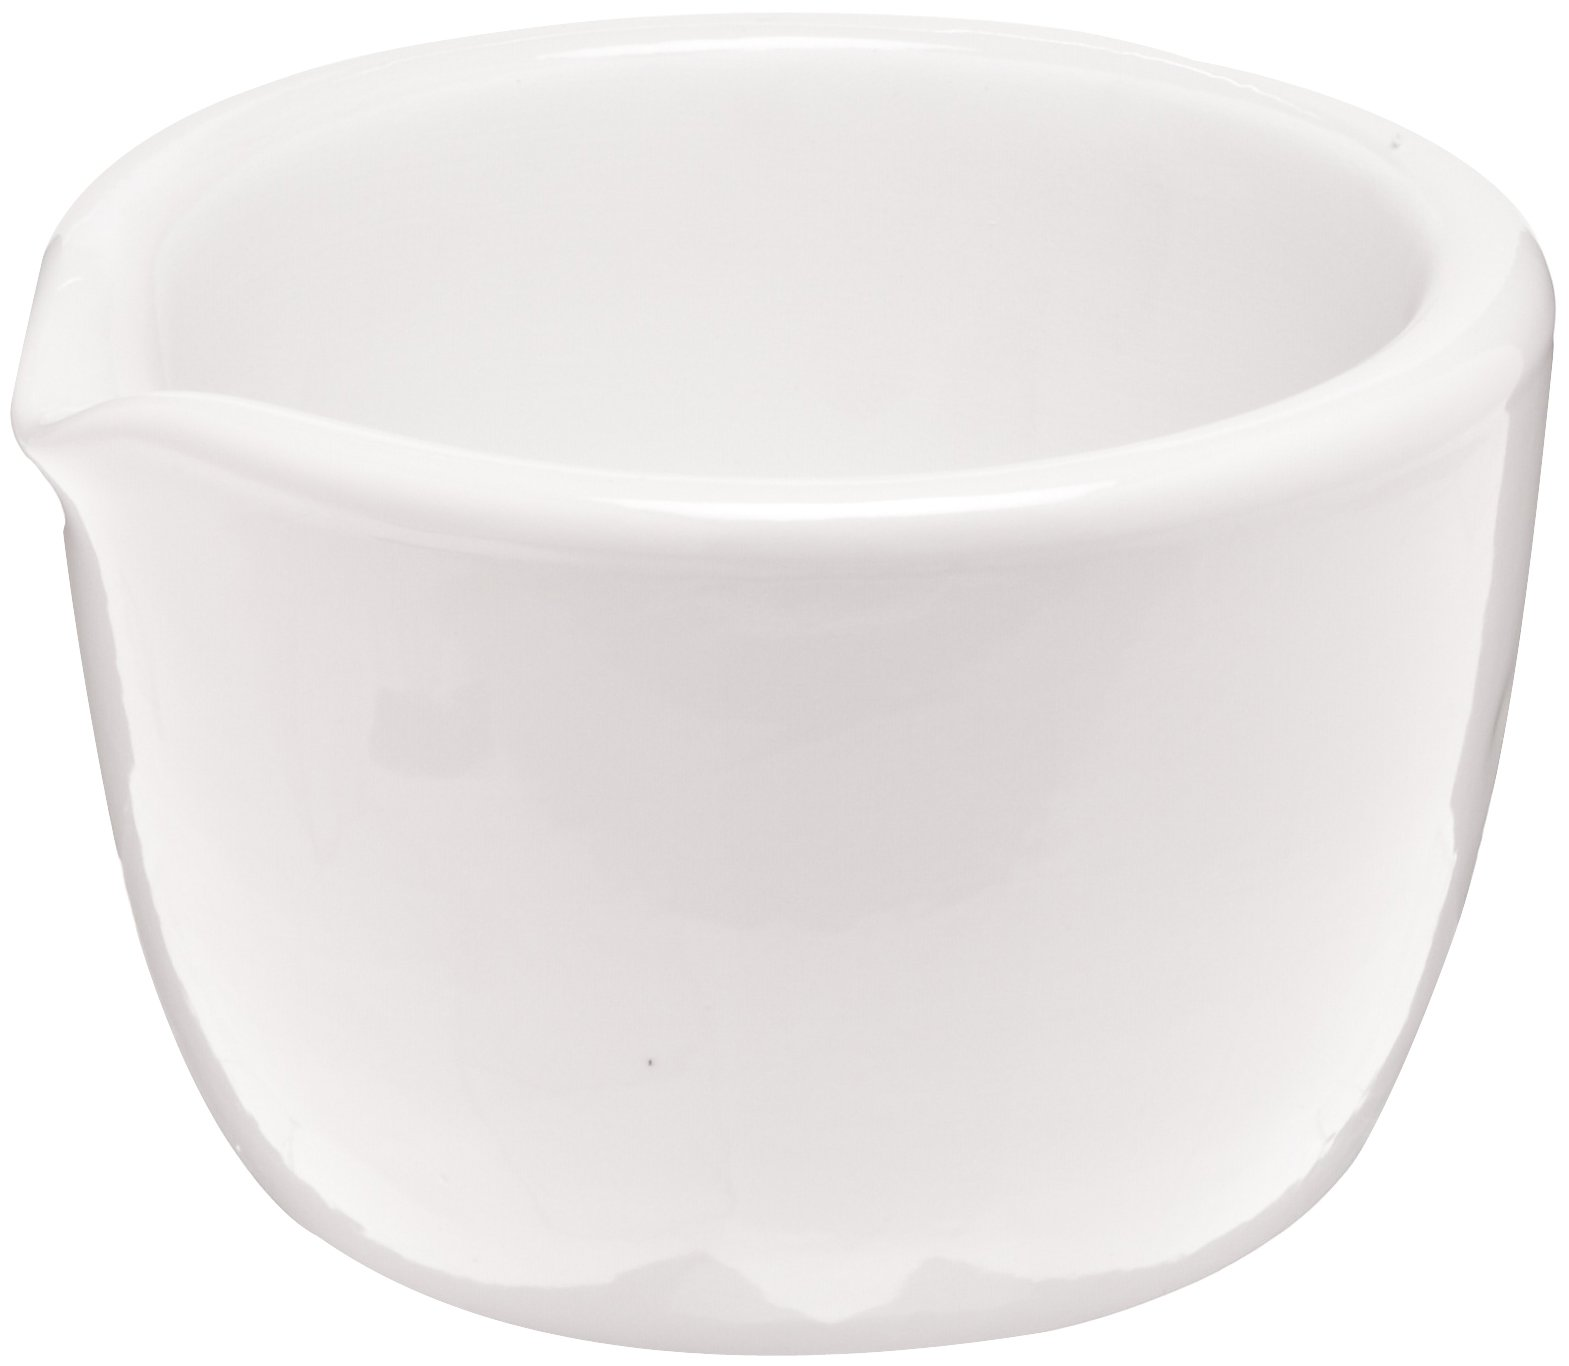 CoorsTek 60325 Porcelain Ceramic Mortar with Pouring Lip, 750mL Capacity, 163mm OD, 110mm Height (Case of 4)